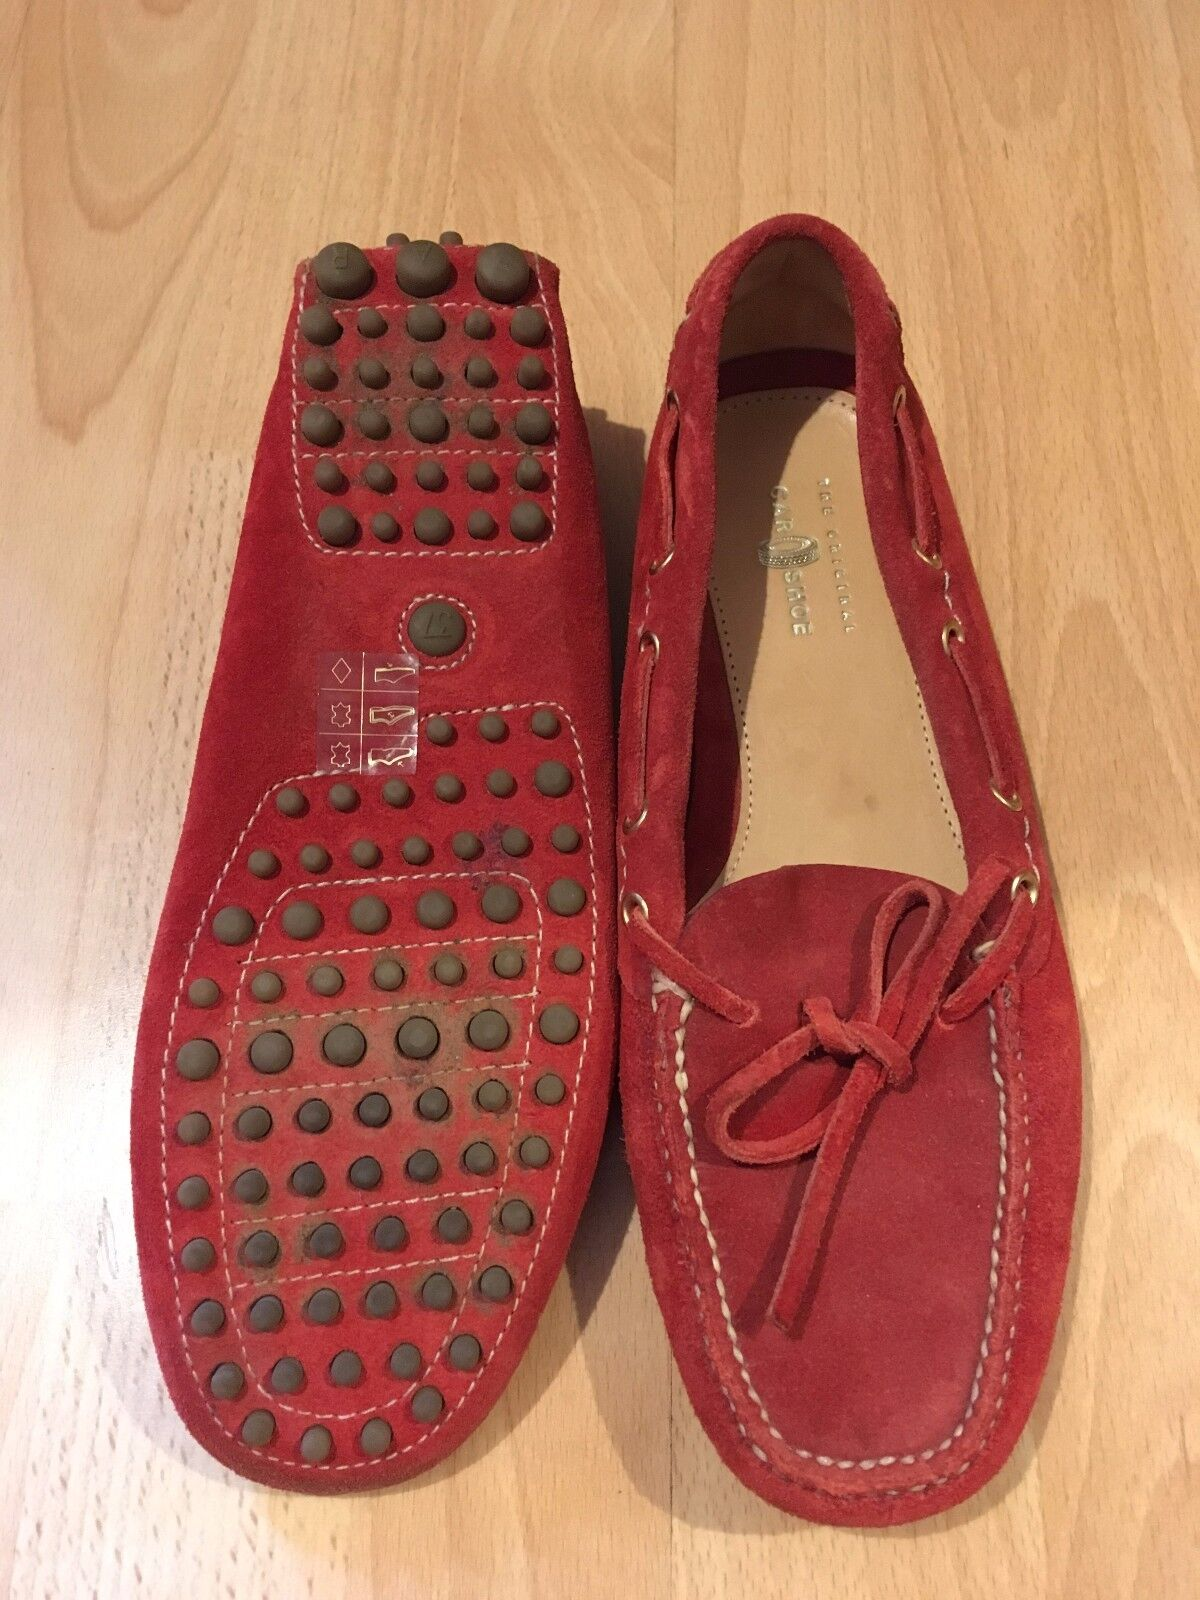 The Original Car shoes Red Driving Loafers Flats Size Size Size 5 105b77